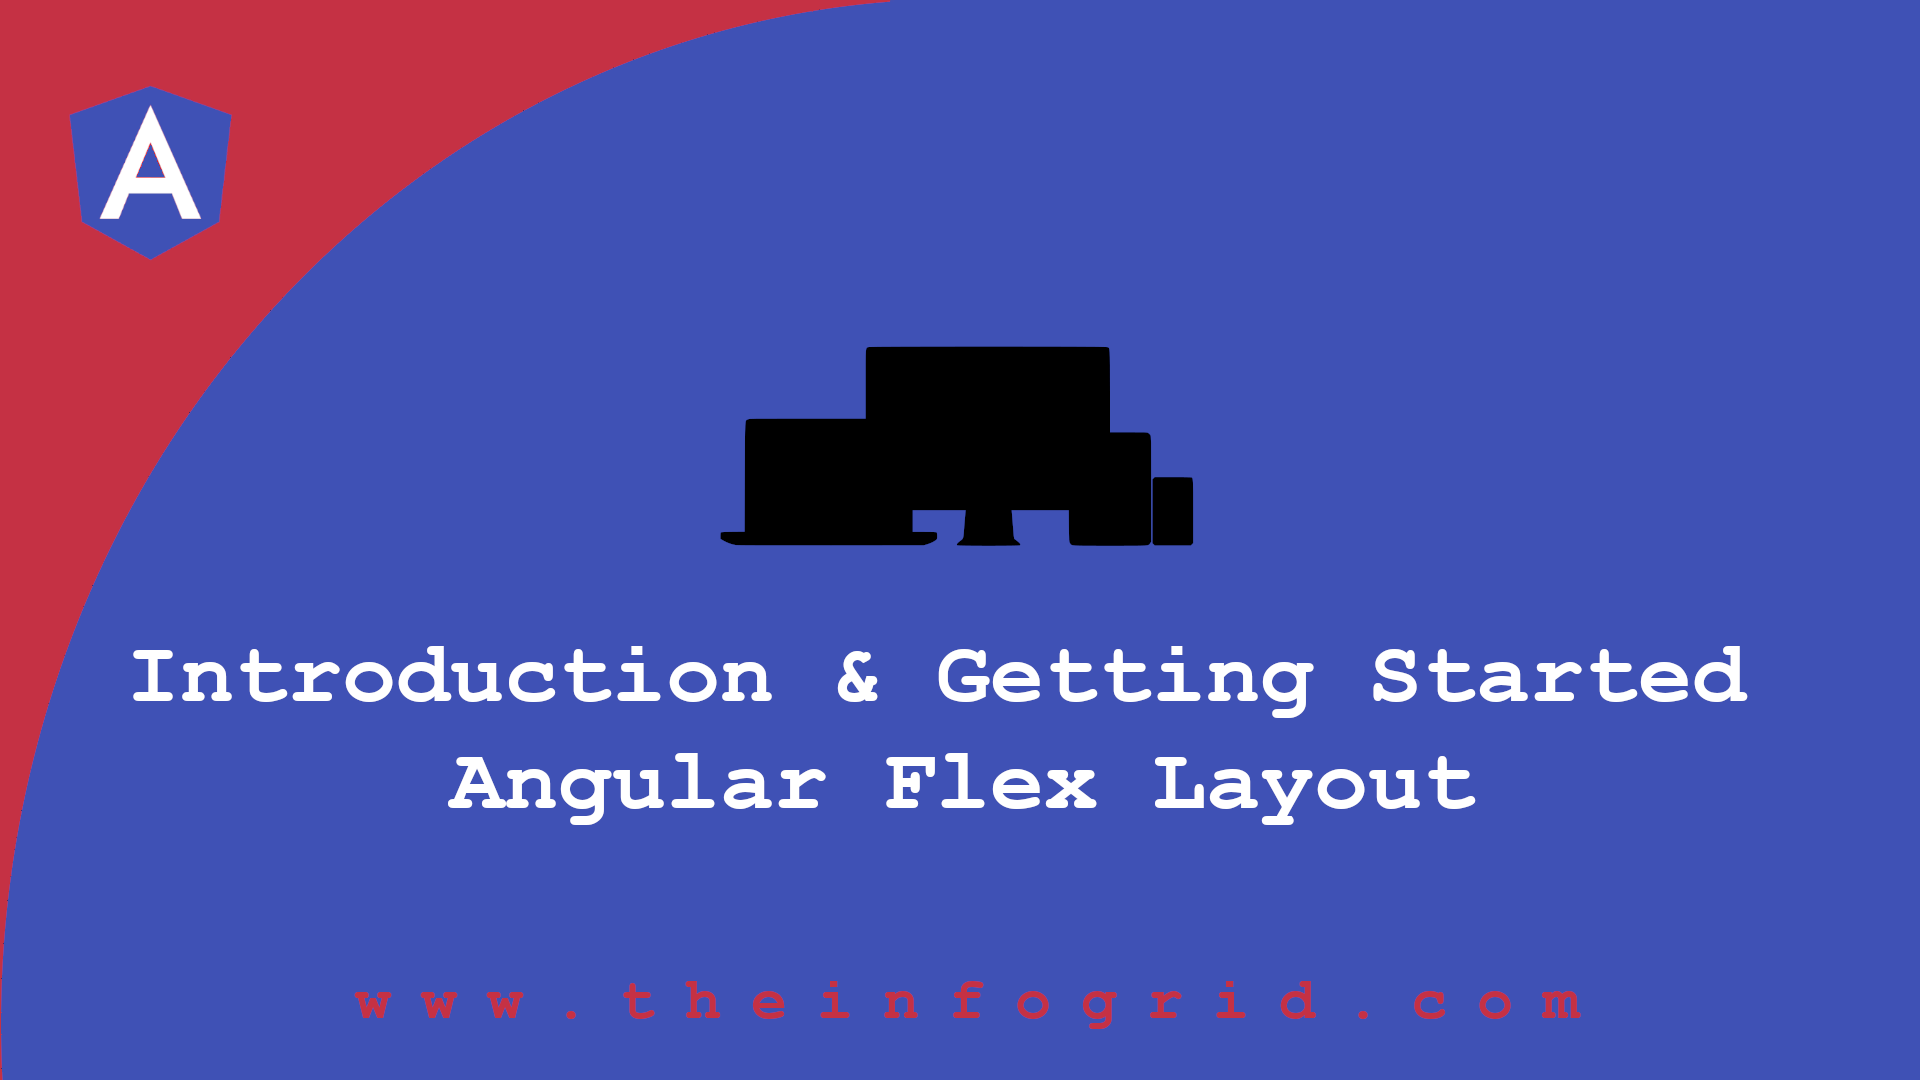 Angular Flex Layout – Introduction & Getting Started